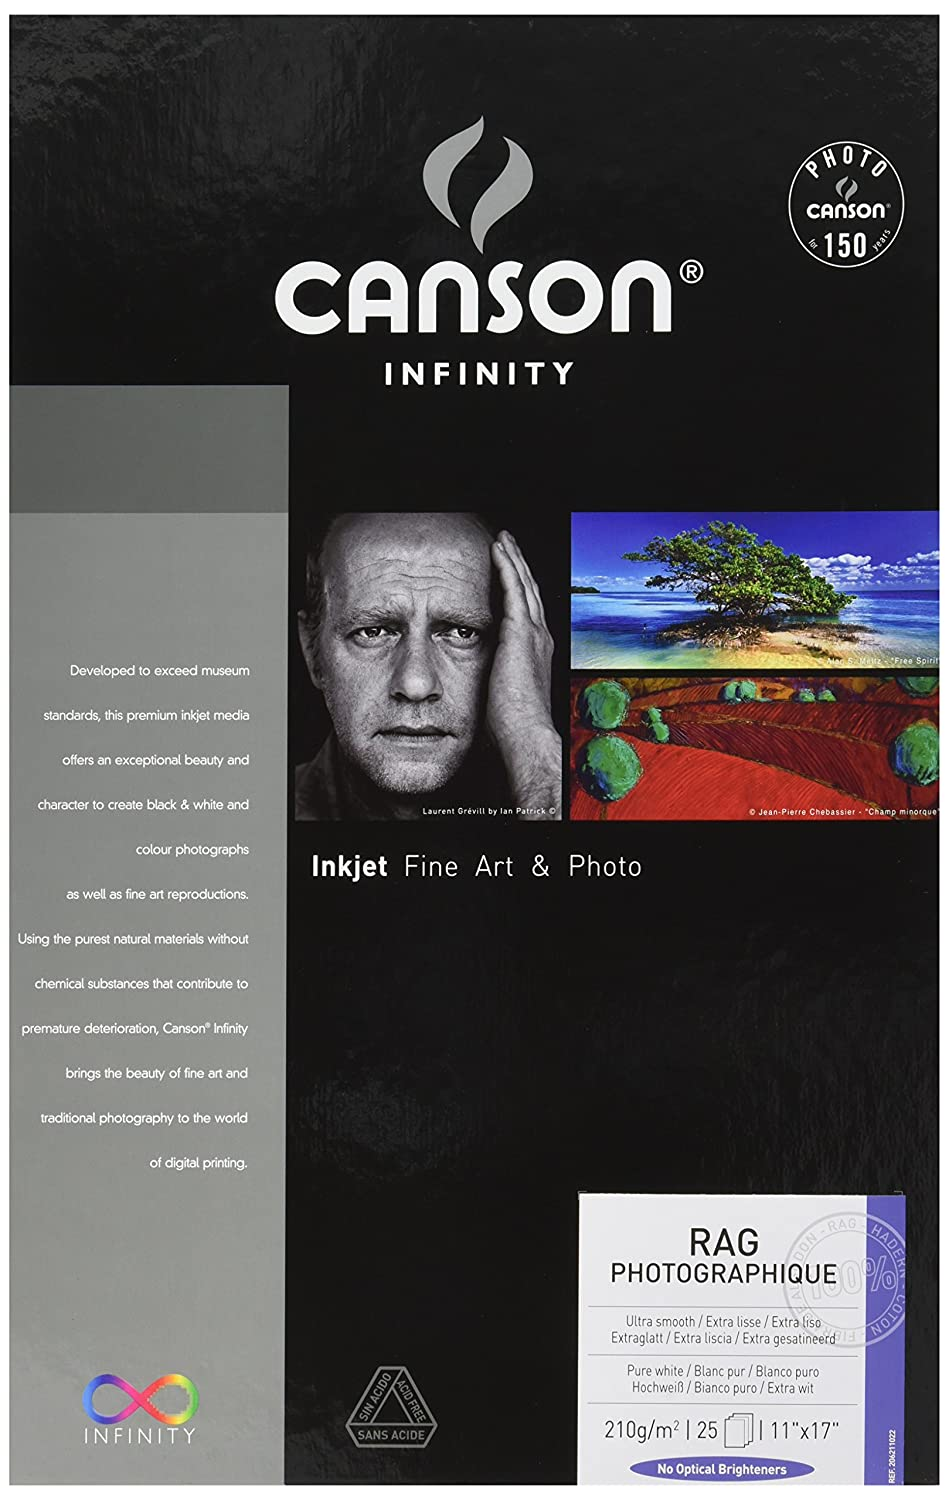 Canson Infinity Rag Photographique Fine Art Paper, 210 Gram, 8.5 x 11 Inch, 10 Sheets (206211020) Canson Inc.